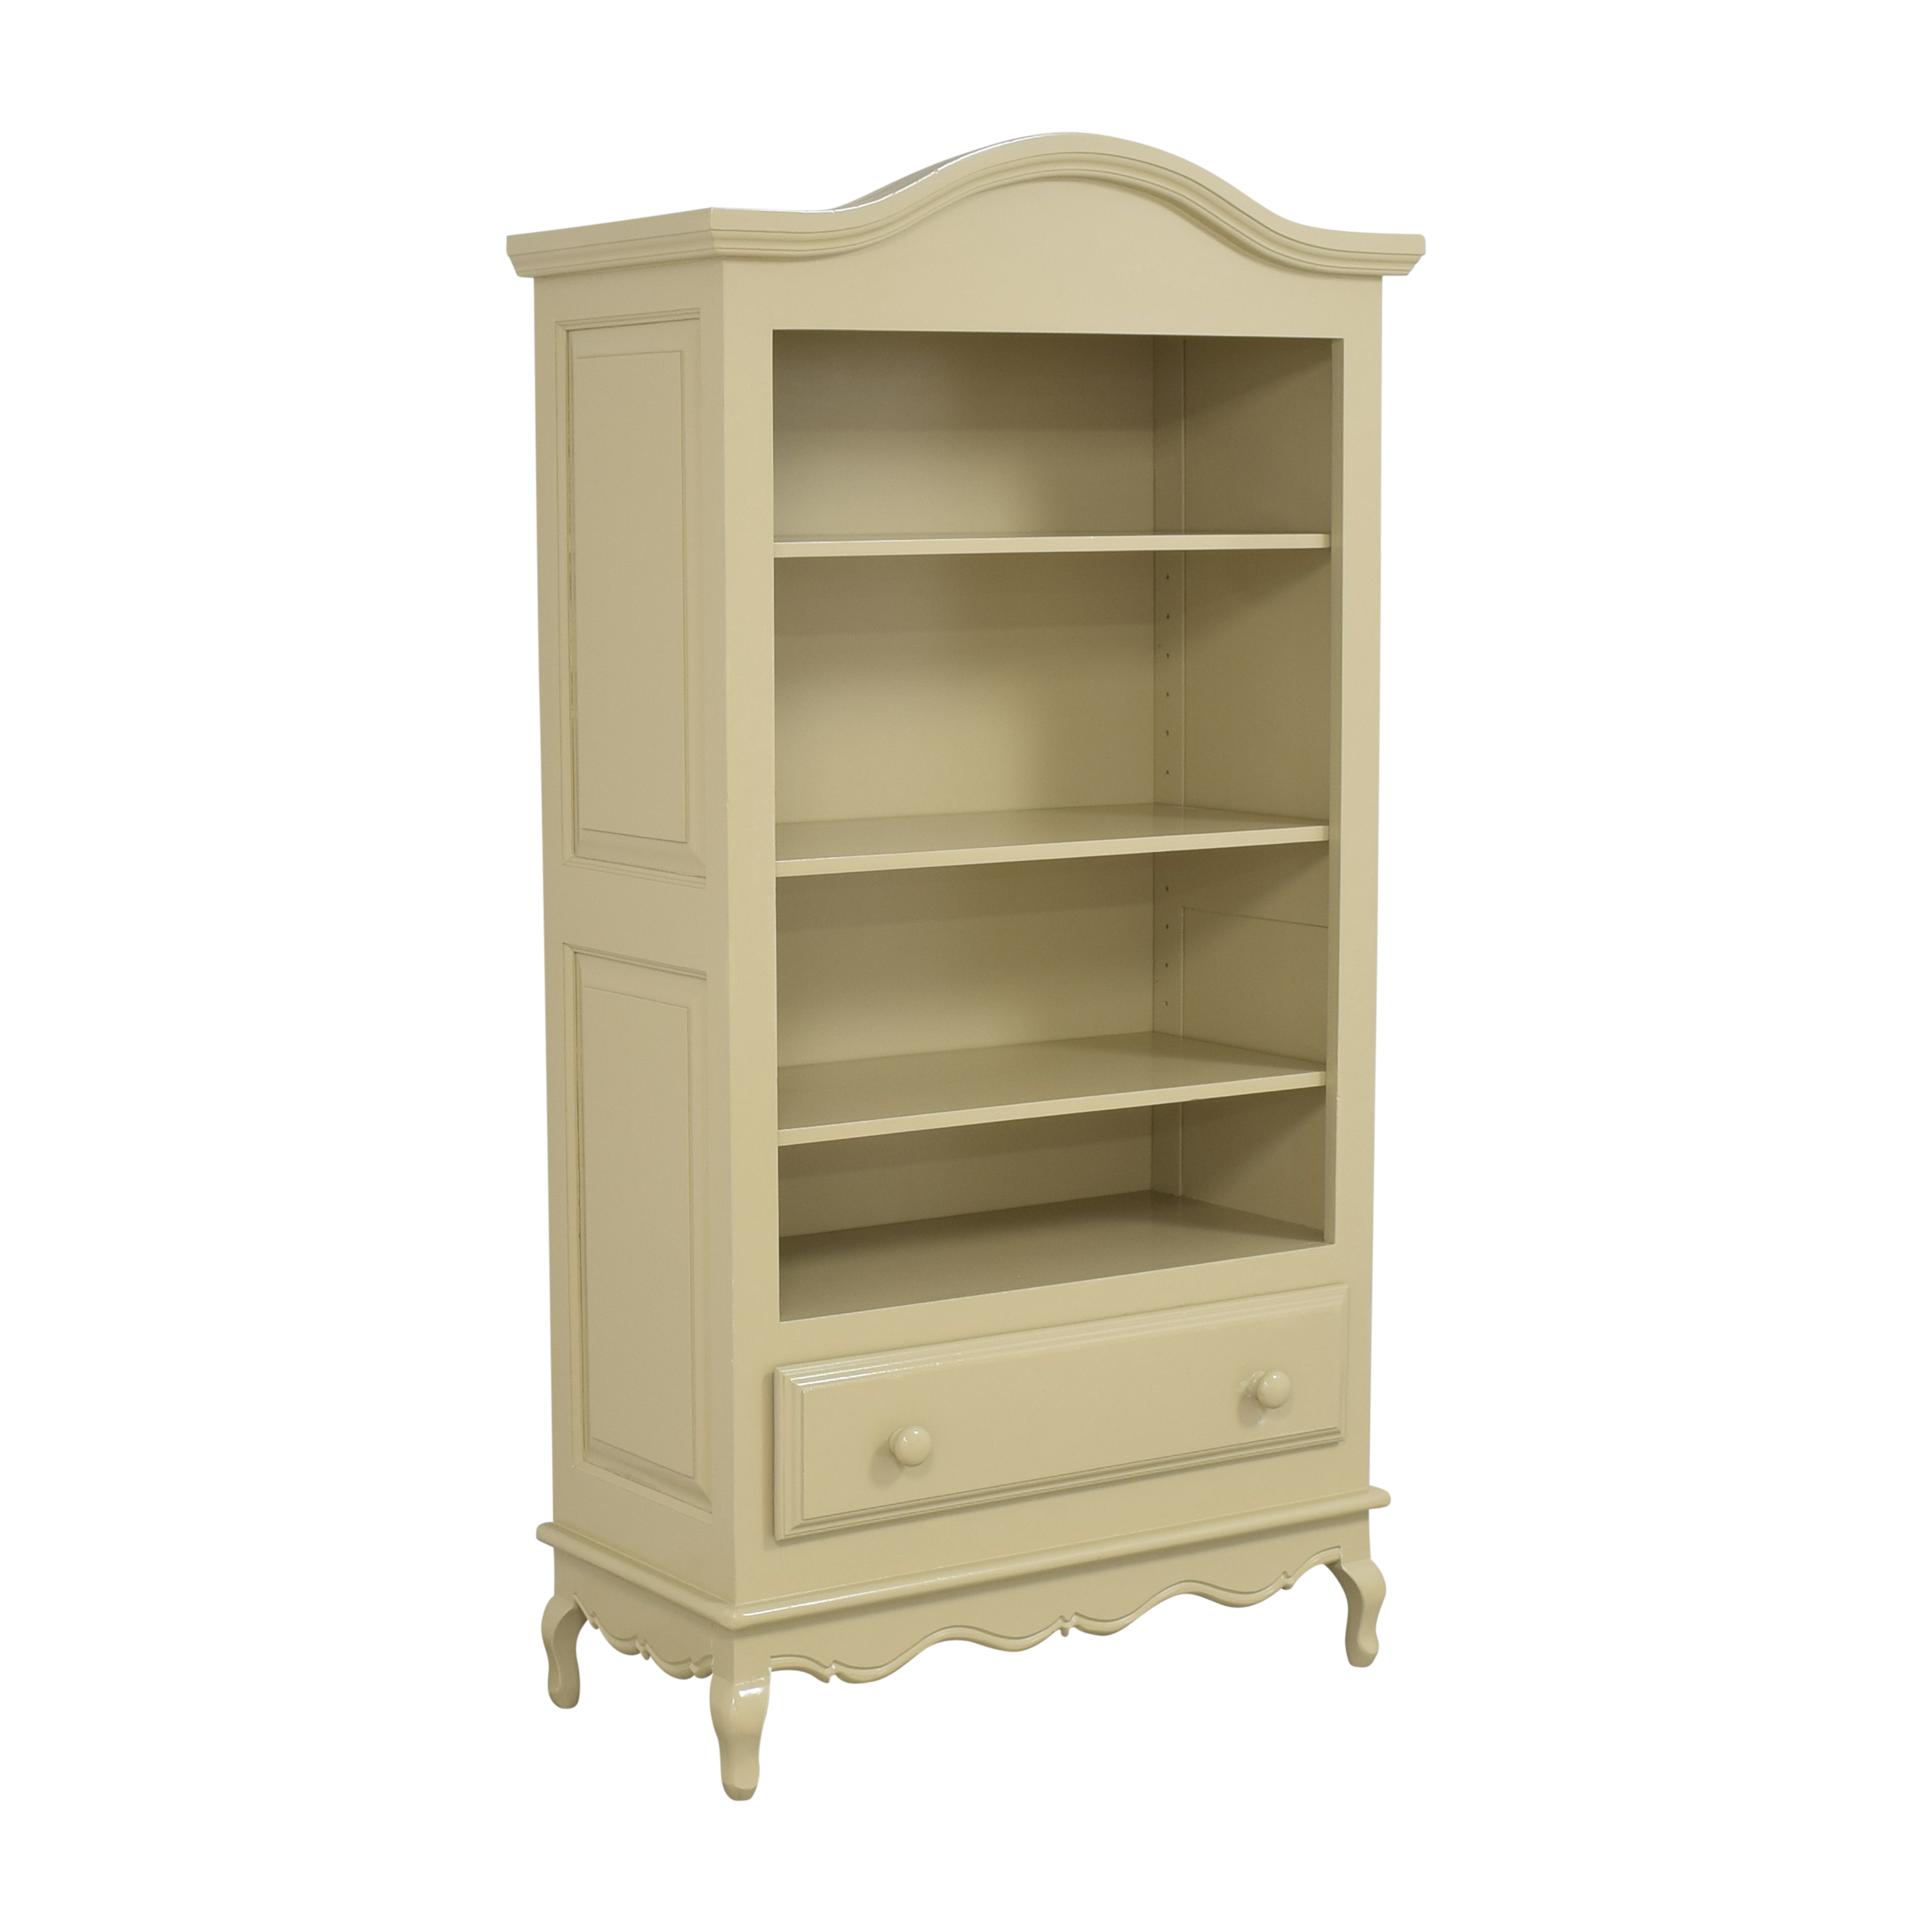 Cottage-Style Bookcase Bookcases & Shelving